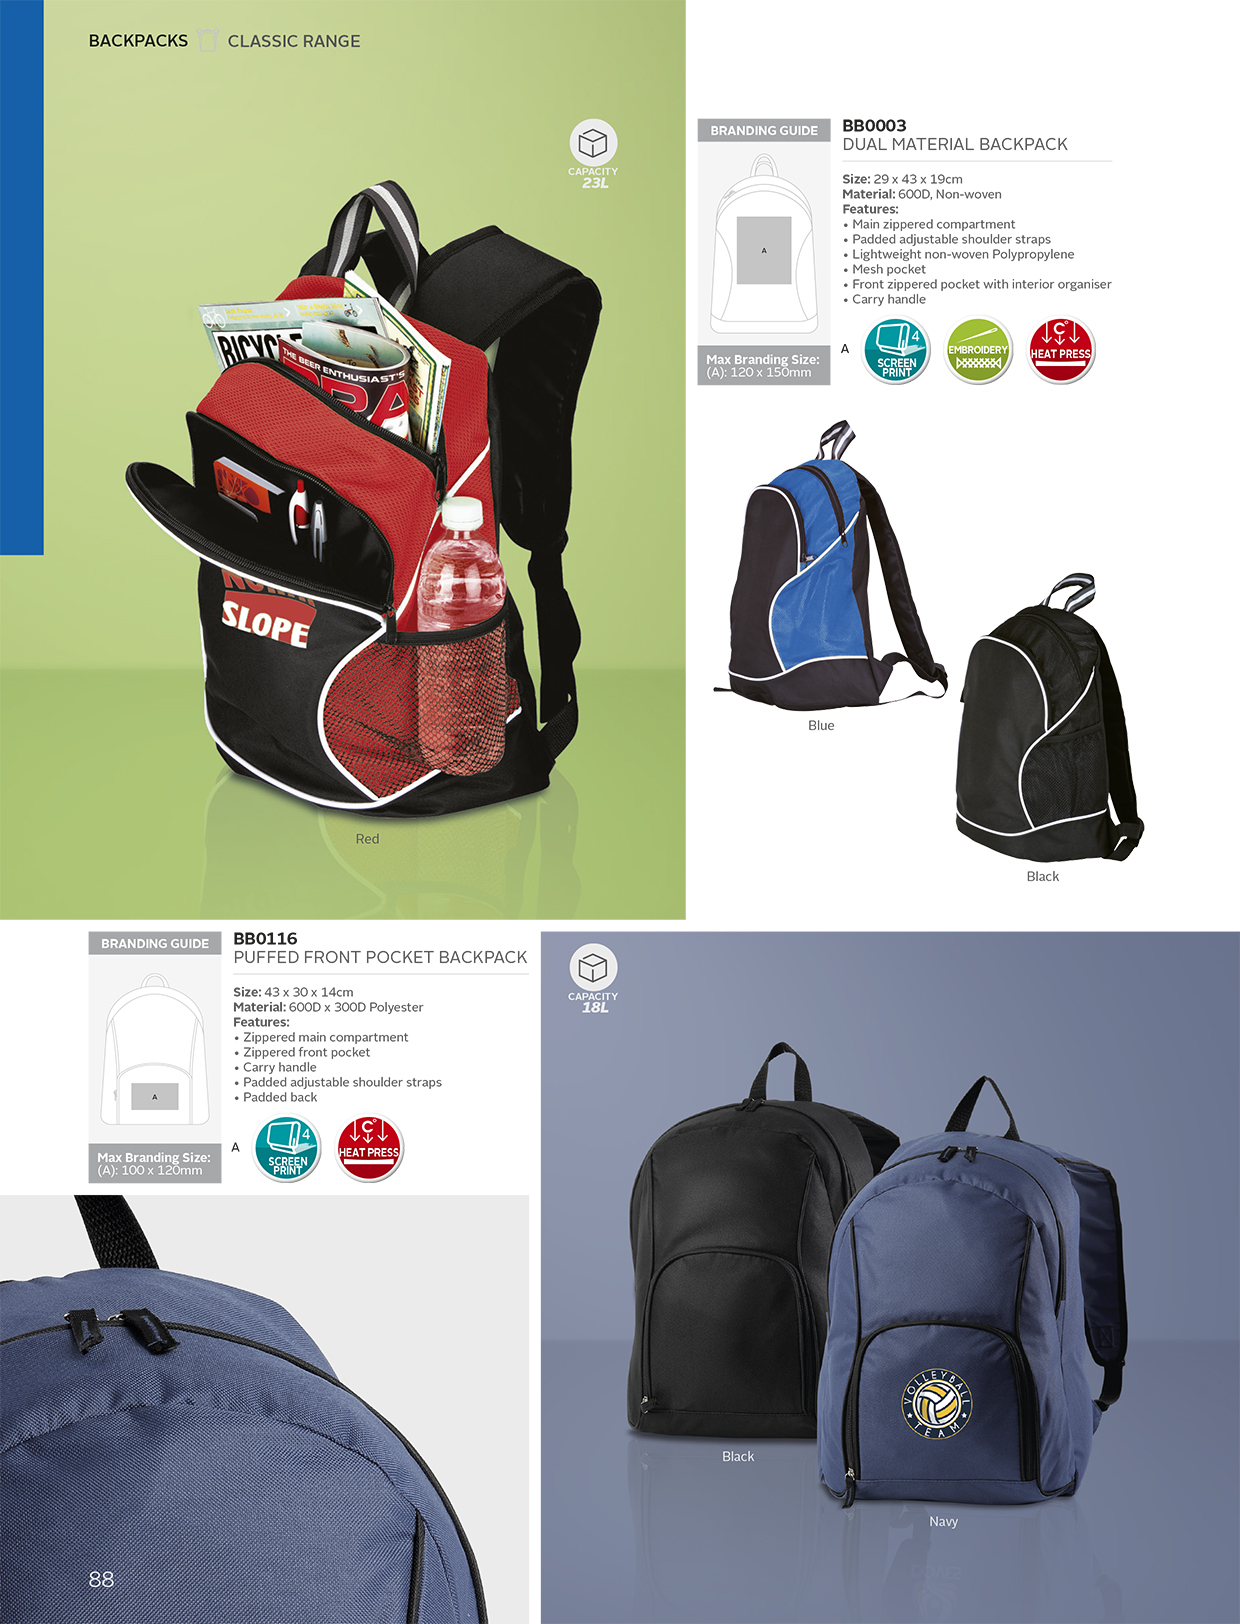 fe9dc16031bc Dual Material Backpack - 600D - Non-WovenRuggit Wear